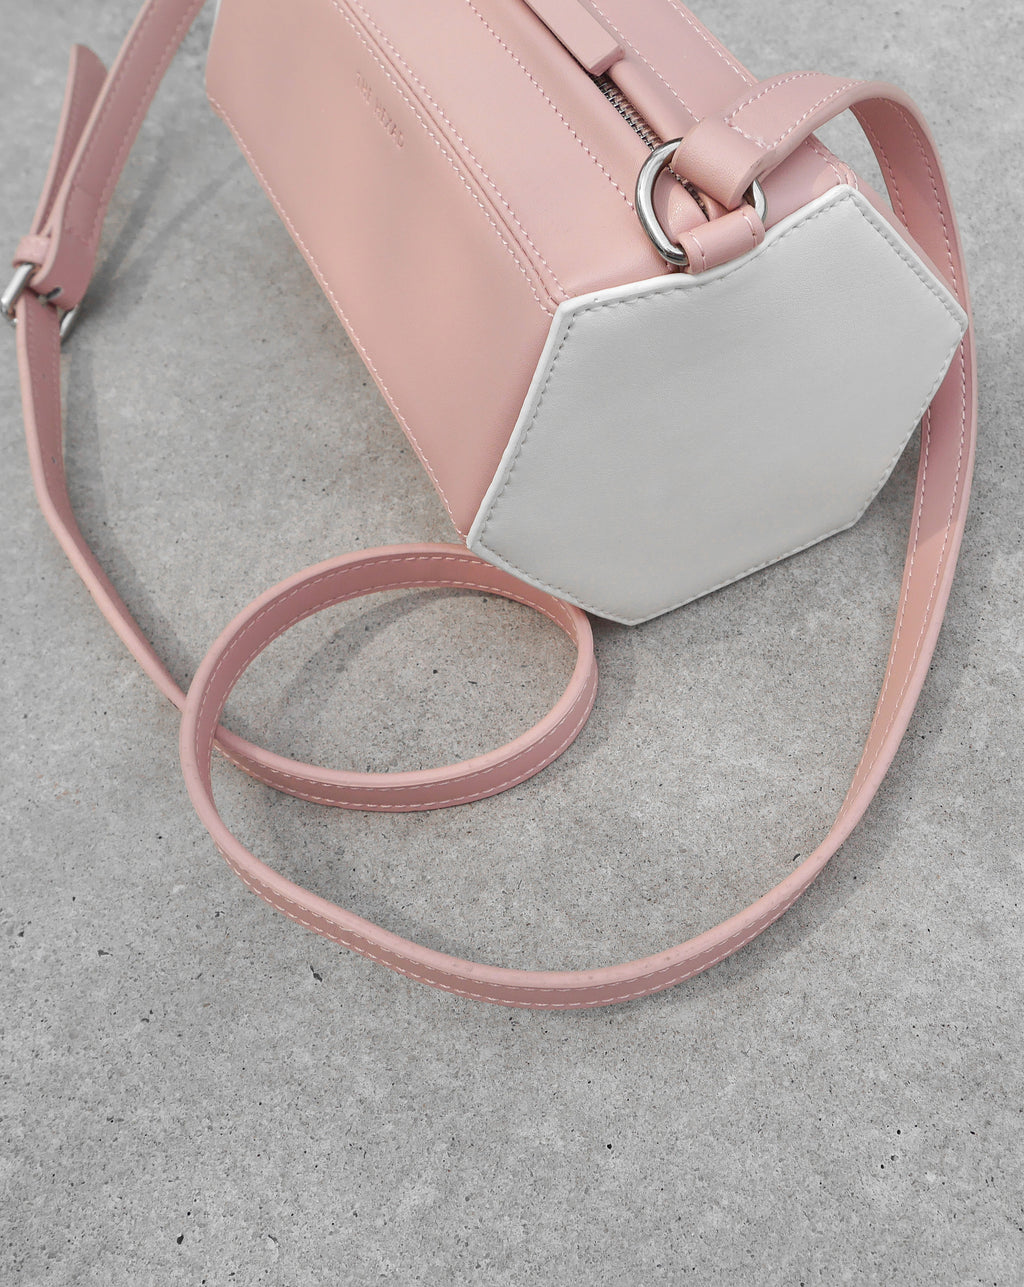 Quirky contrasting color crossbody in baby shell pink and white - The Hexad Bags